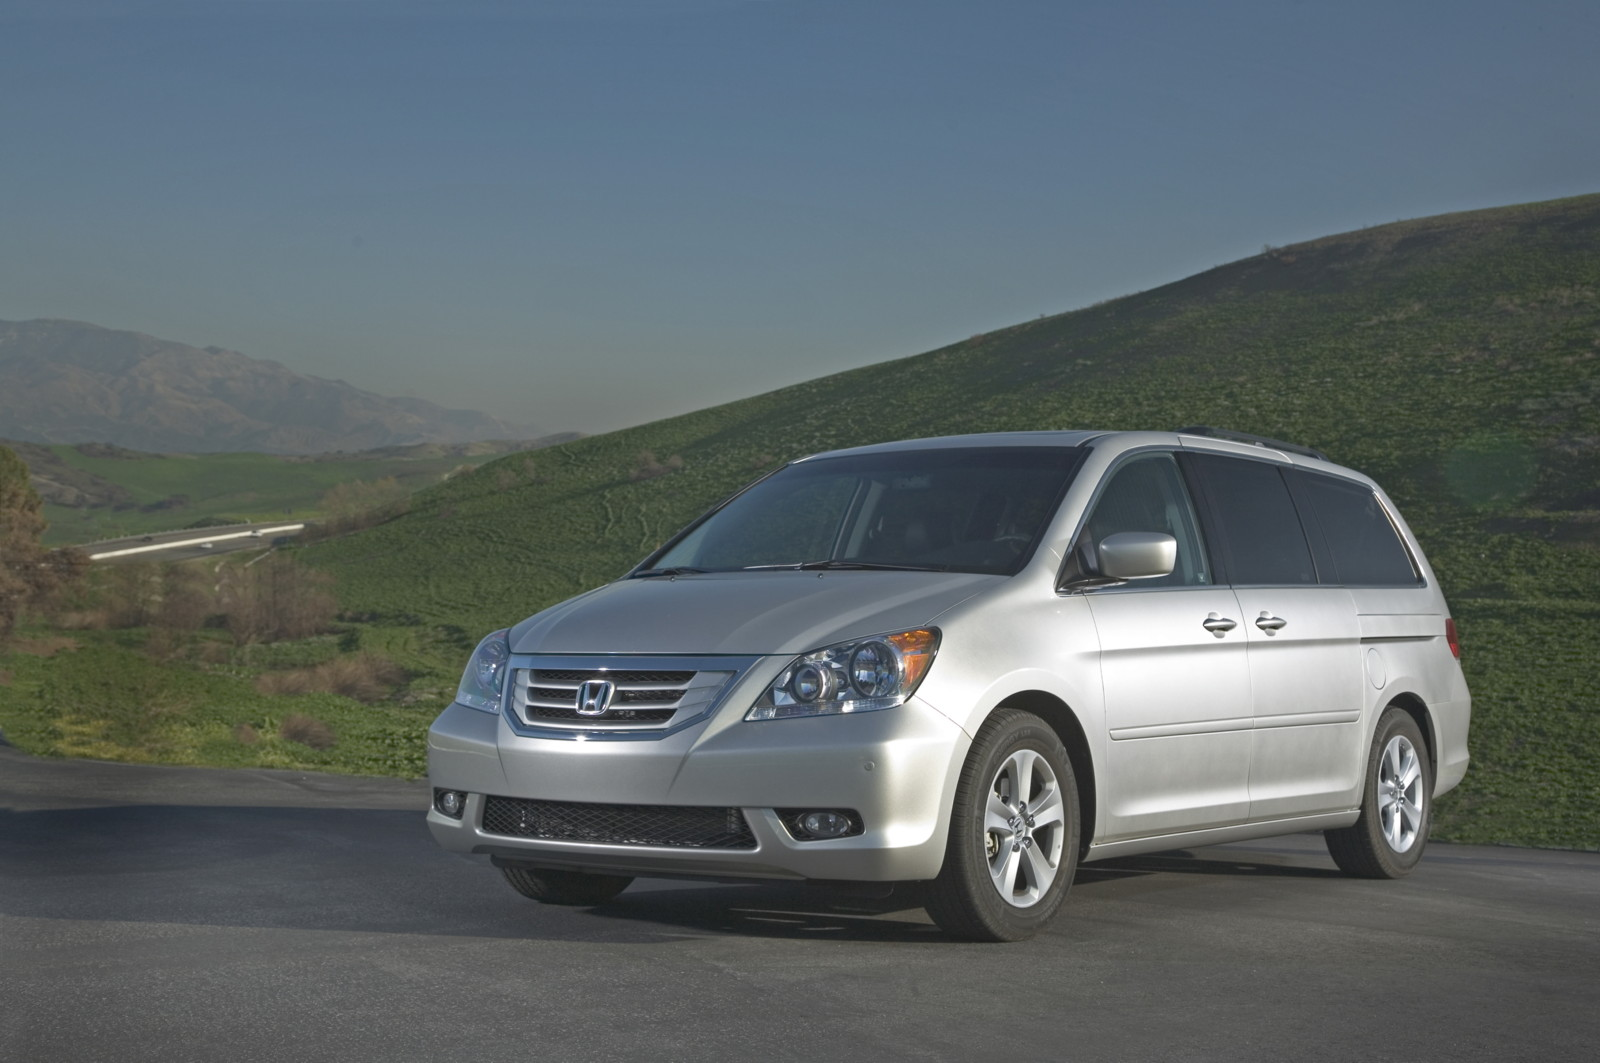 2005 2010 Honda Odyssey Recalled For Fuel Leaks Acura Transmission Problems